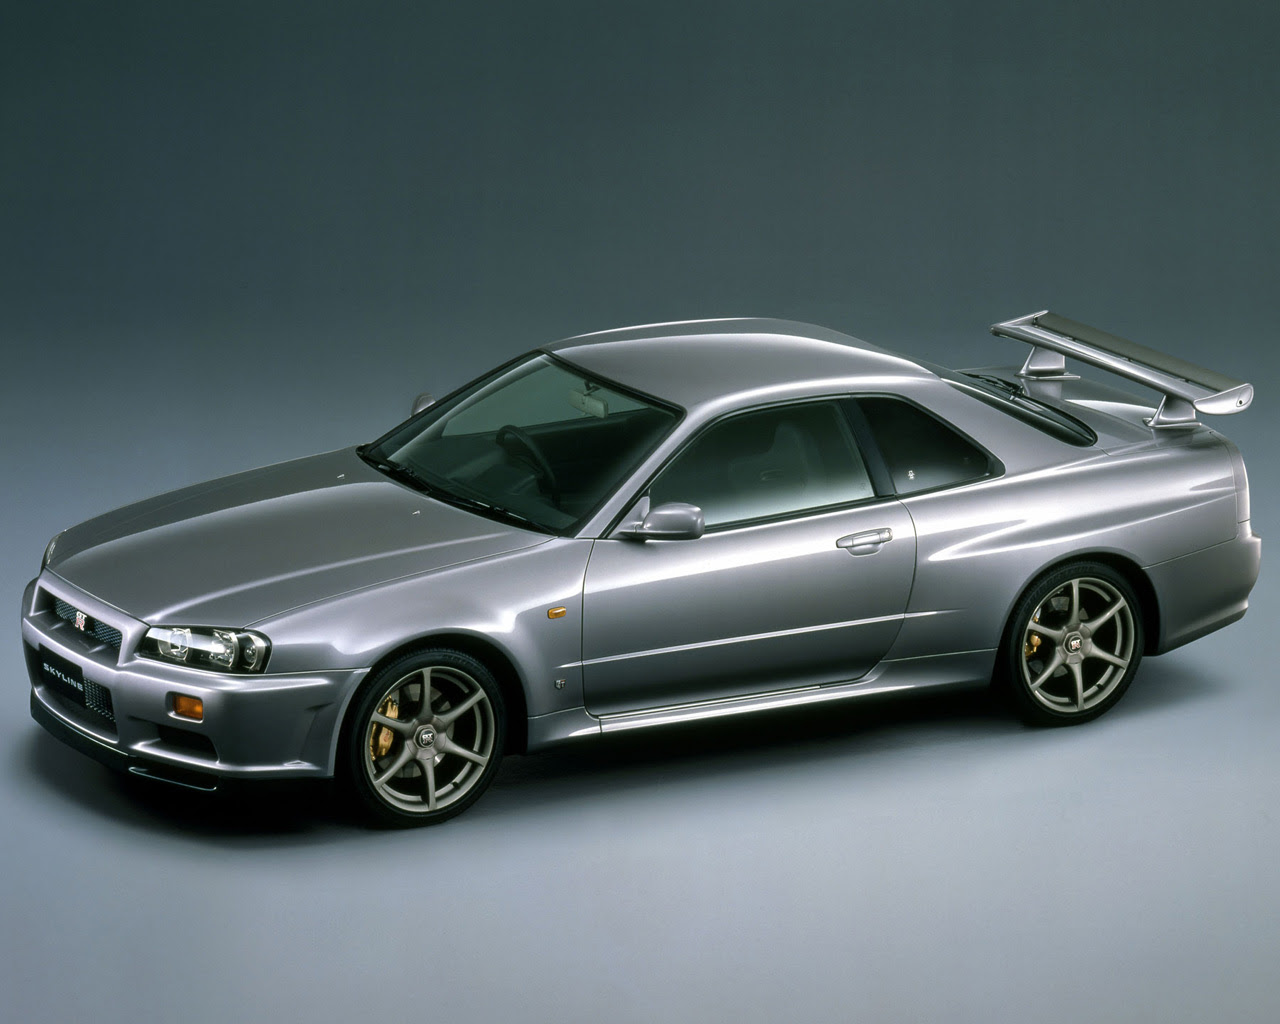 R34 Nissan Skyline Gtr Free 1280x1024 Wallpaper Desktop